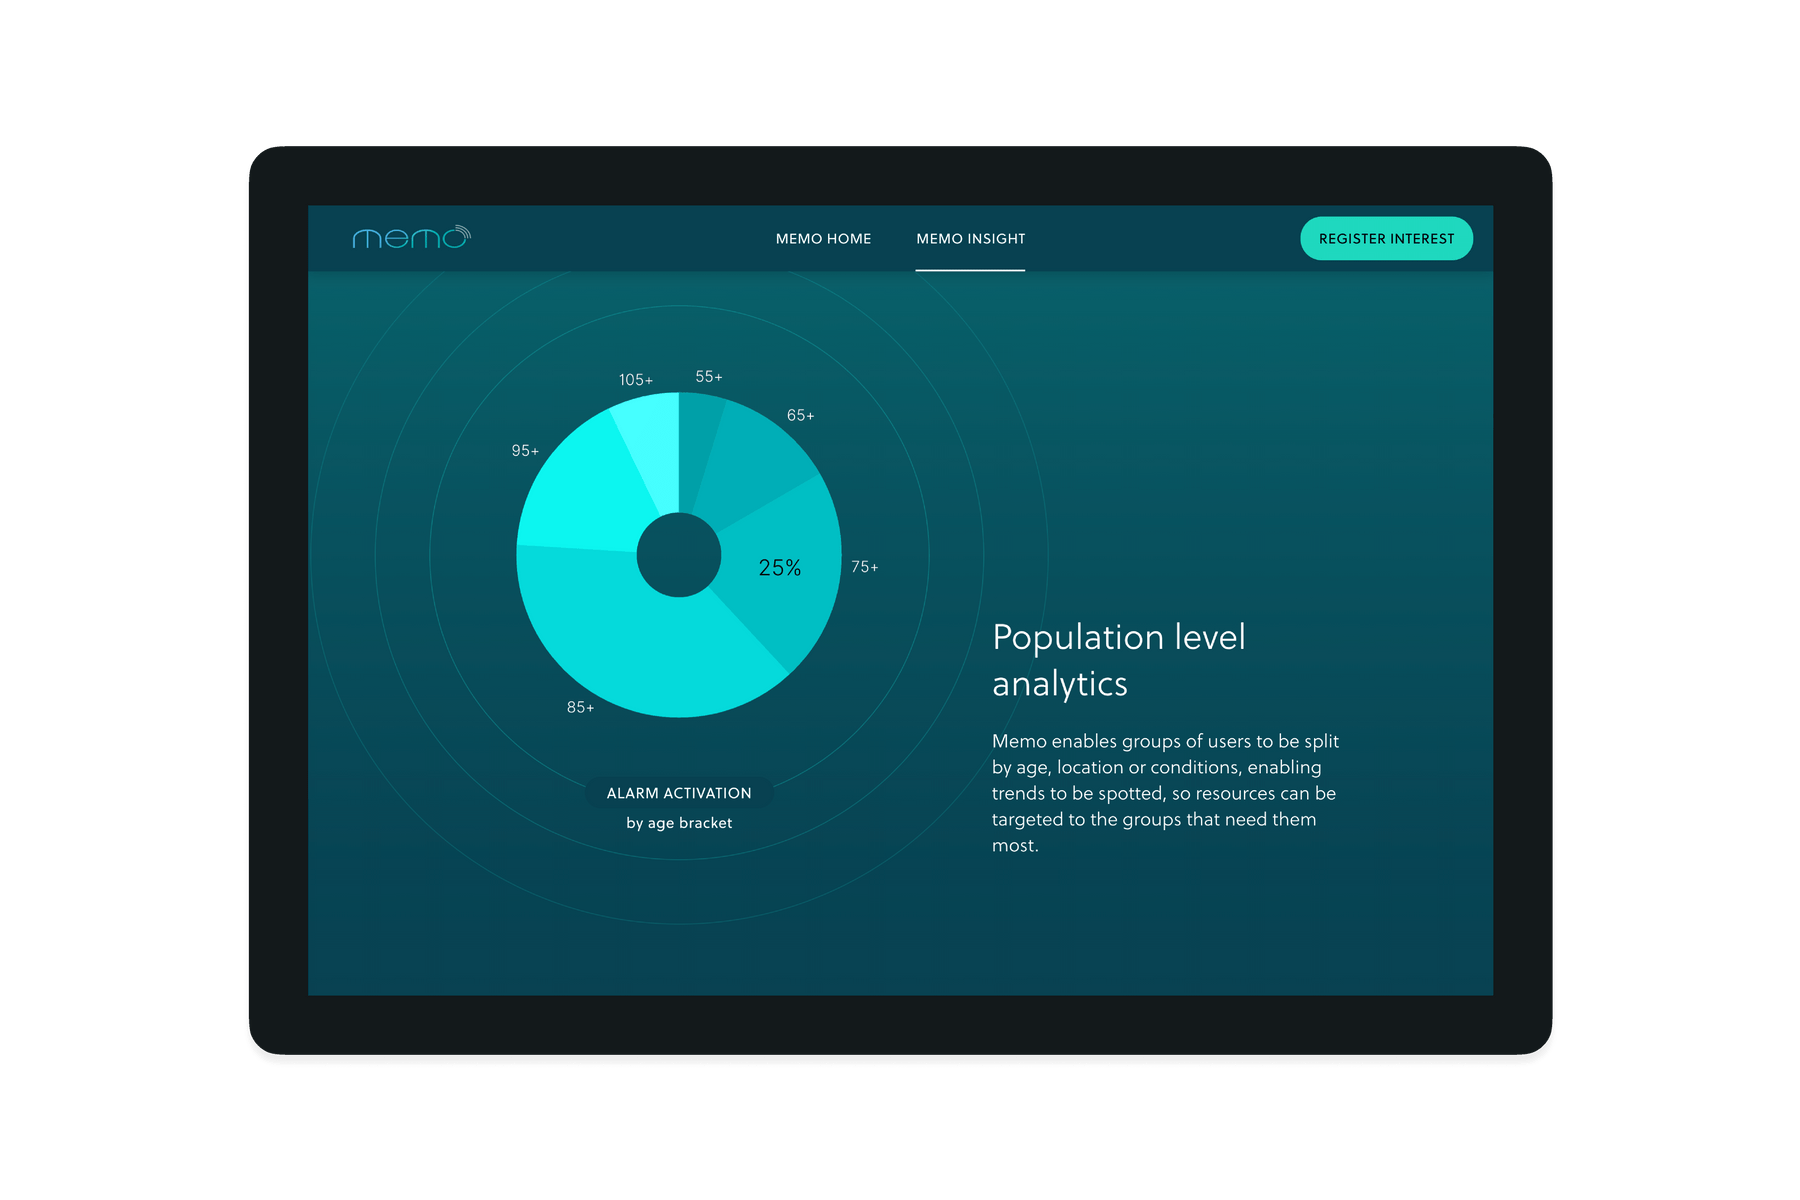 Tablet showing the design of the Memo website